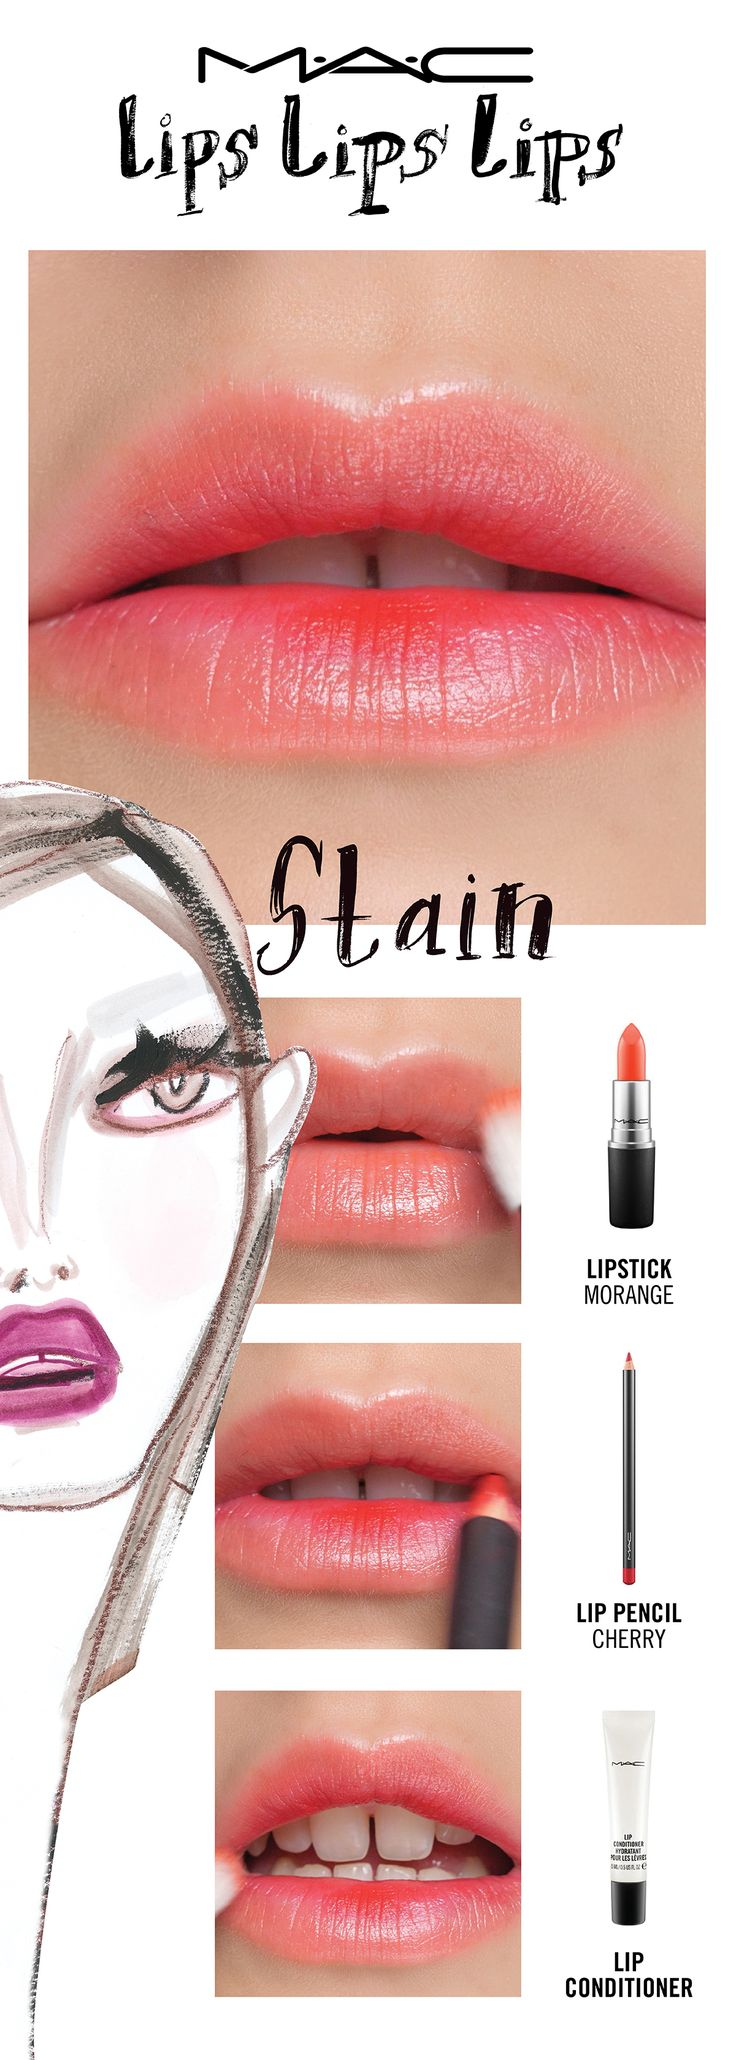 It's summer! Go for a juicy, just-bitten look. Bold colour looks gorgeously natural when applied as a lip stain. For a delicious effect, try The Sherbet Stain seen here! Try a lip trend, then make it your own! Your choice. Your creation. Your trend. Creat